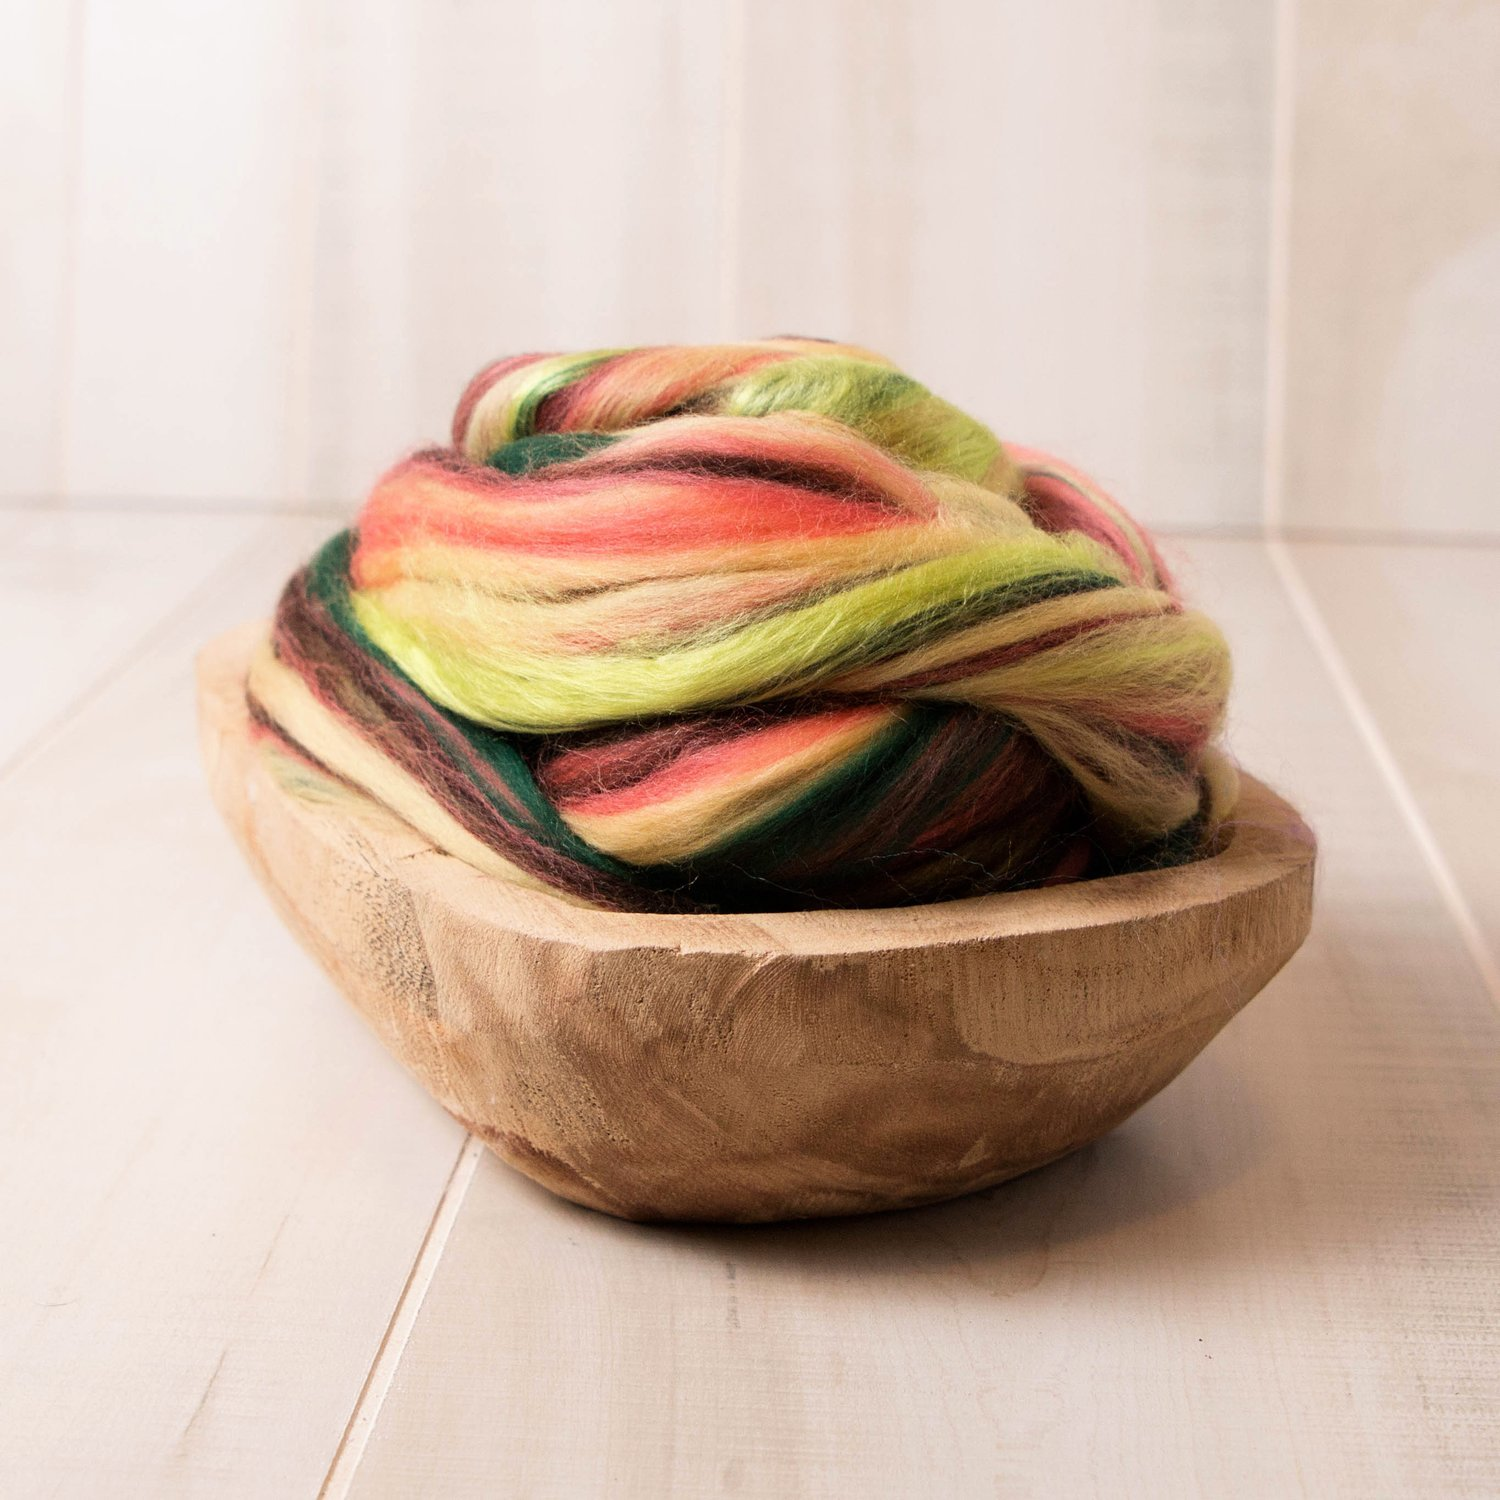 Pineapple Surprise Wool Roving for Spinning, Felting and Fiber Arts